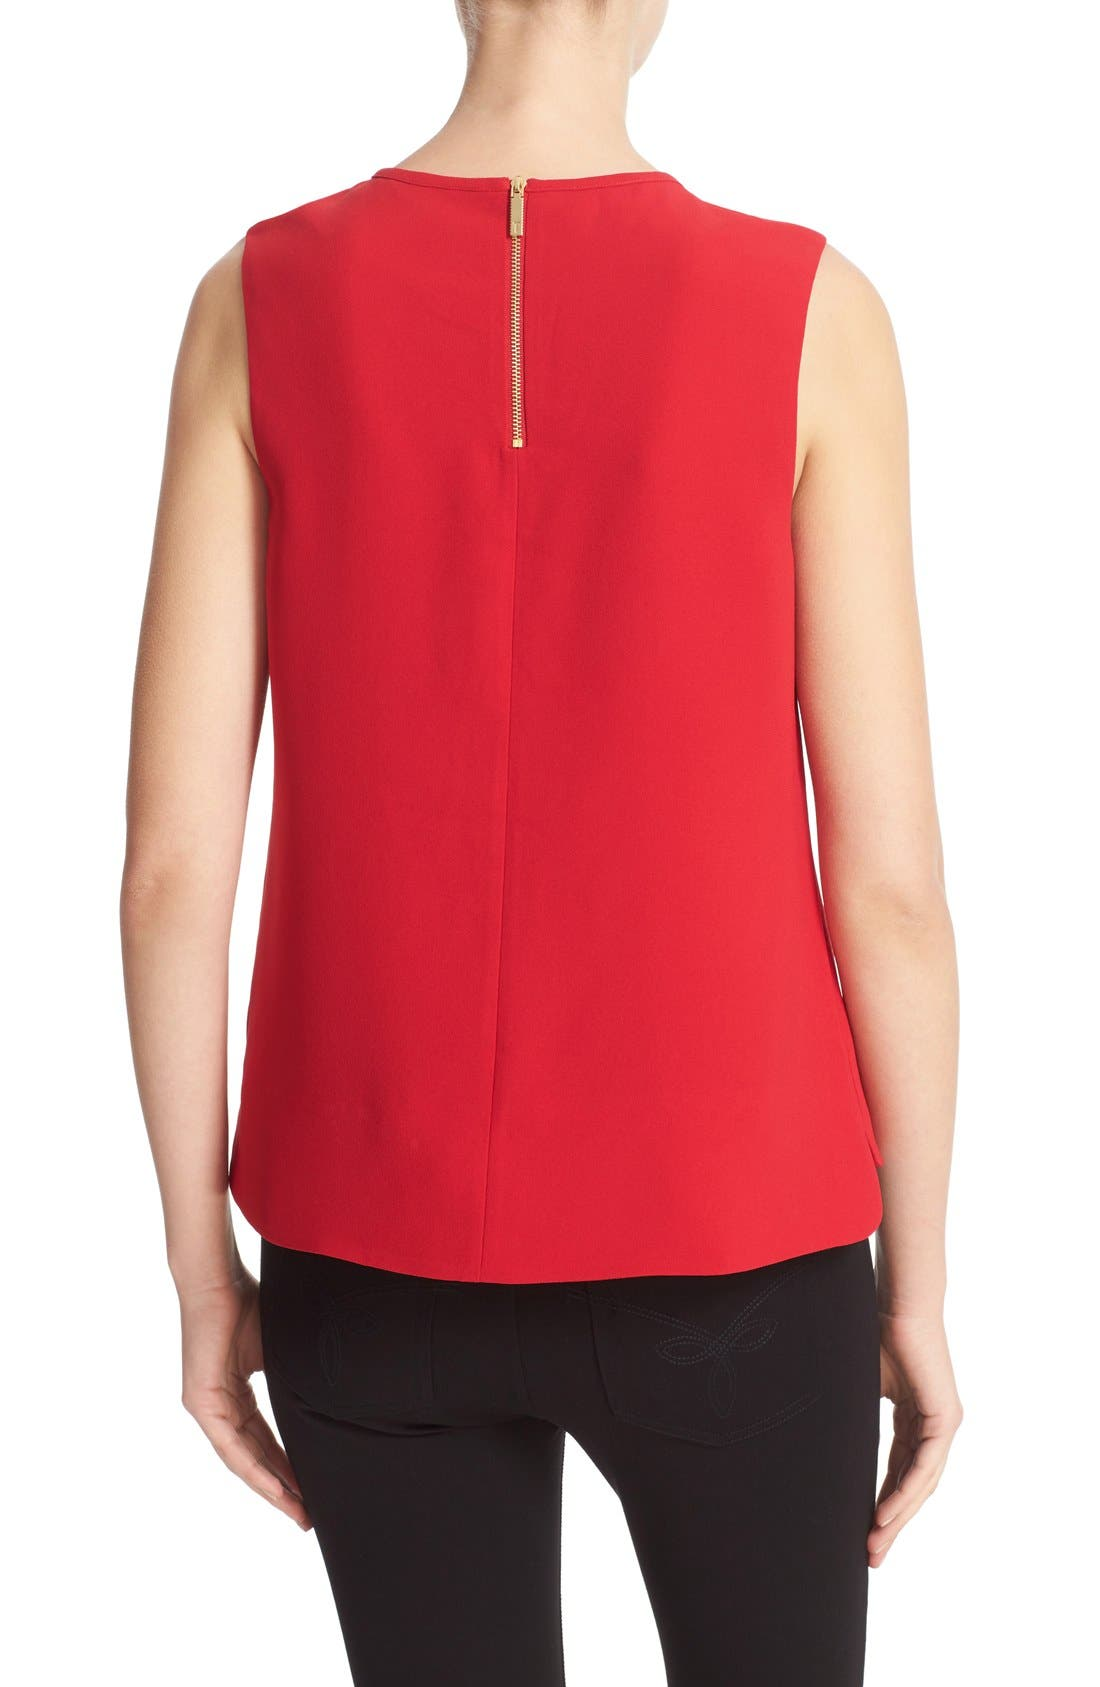 TED BAKER LONDON, Natalle Bow Detail Crepe Top, Alternate thumbnail 8, color, 604